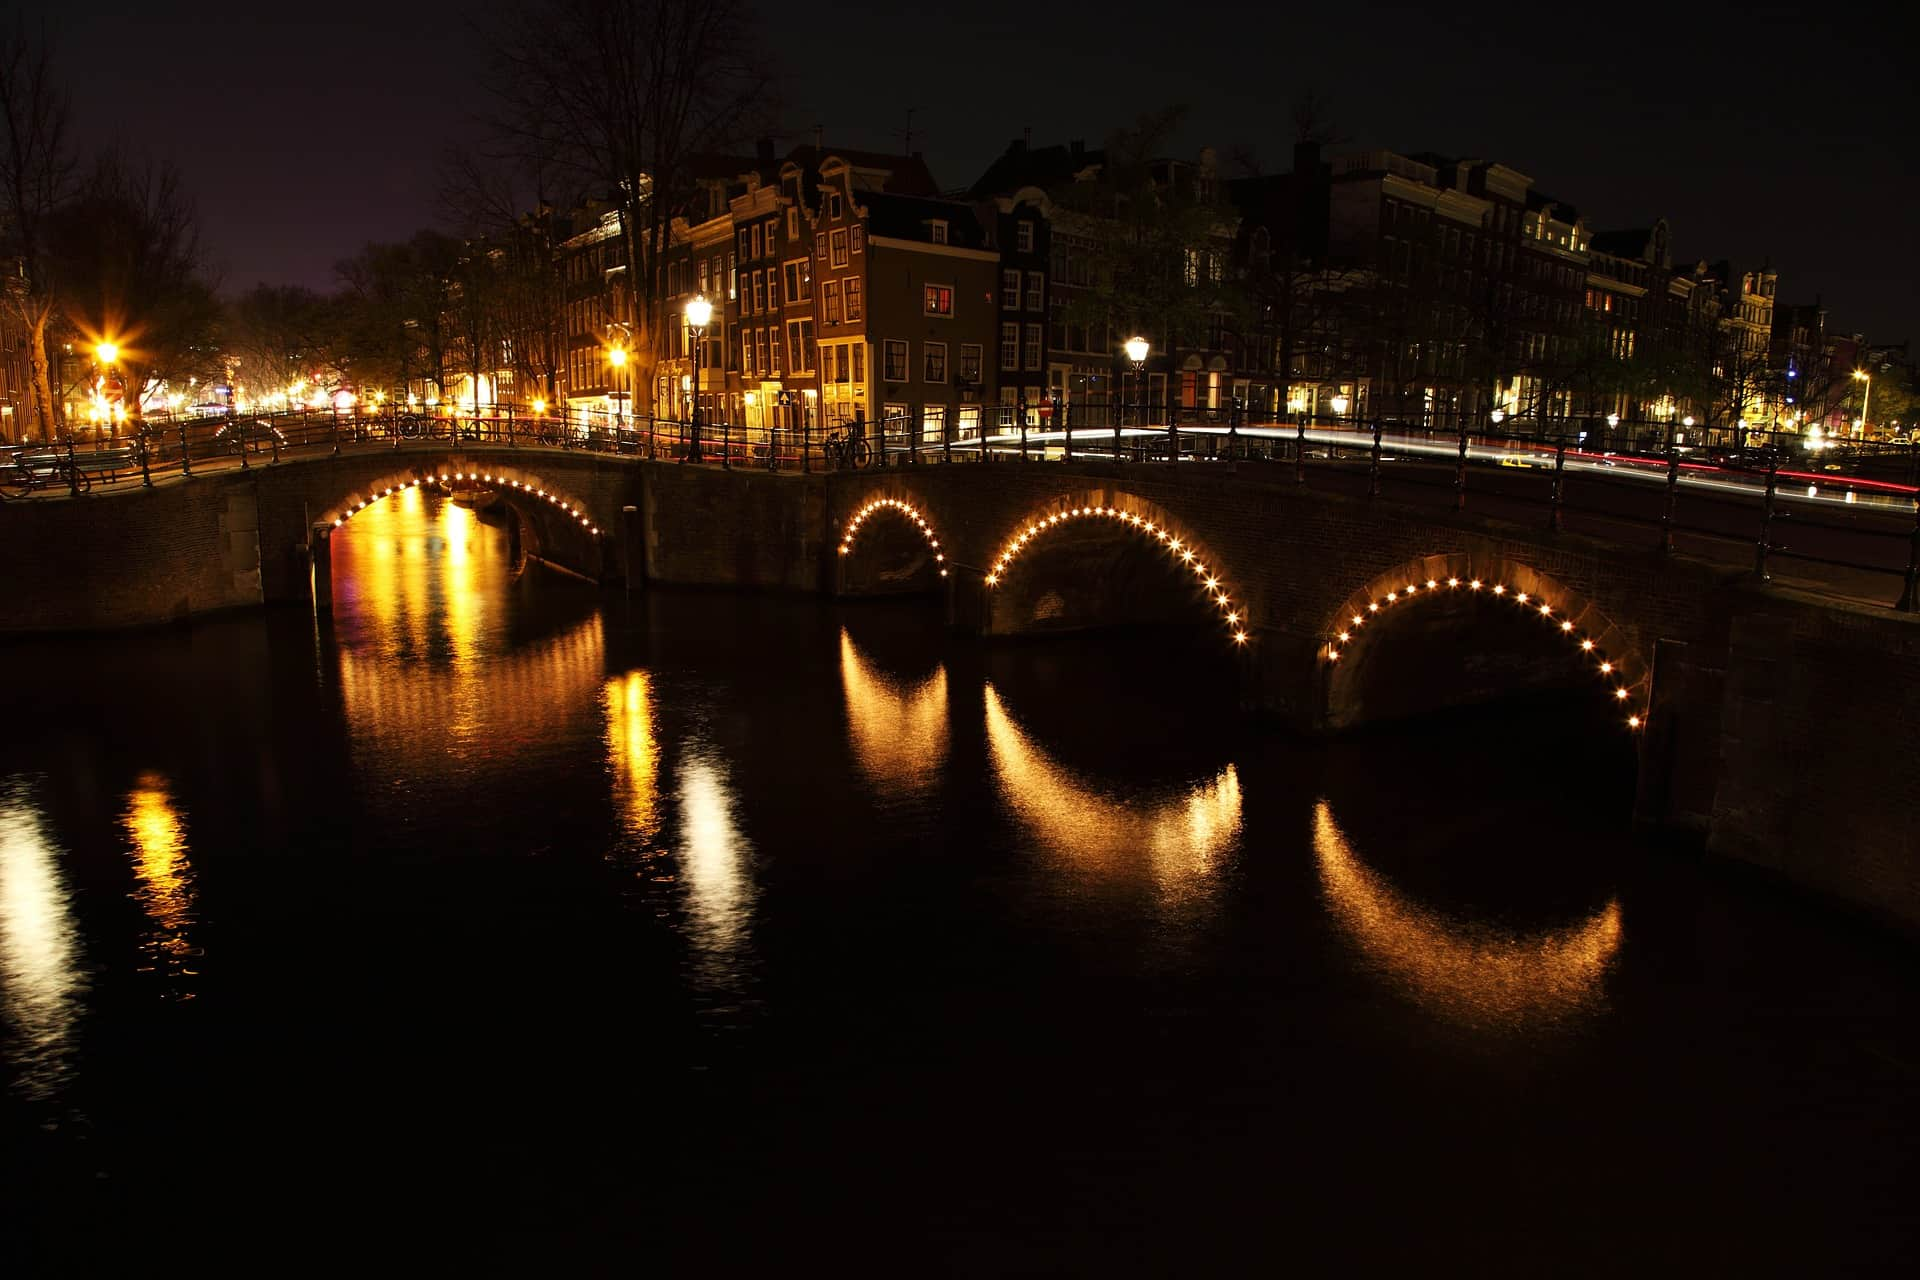 Romantic Amsterdam canals by evening light.